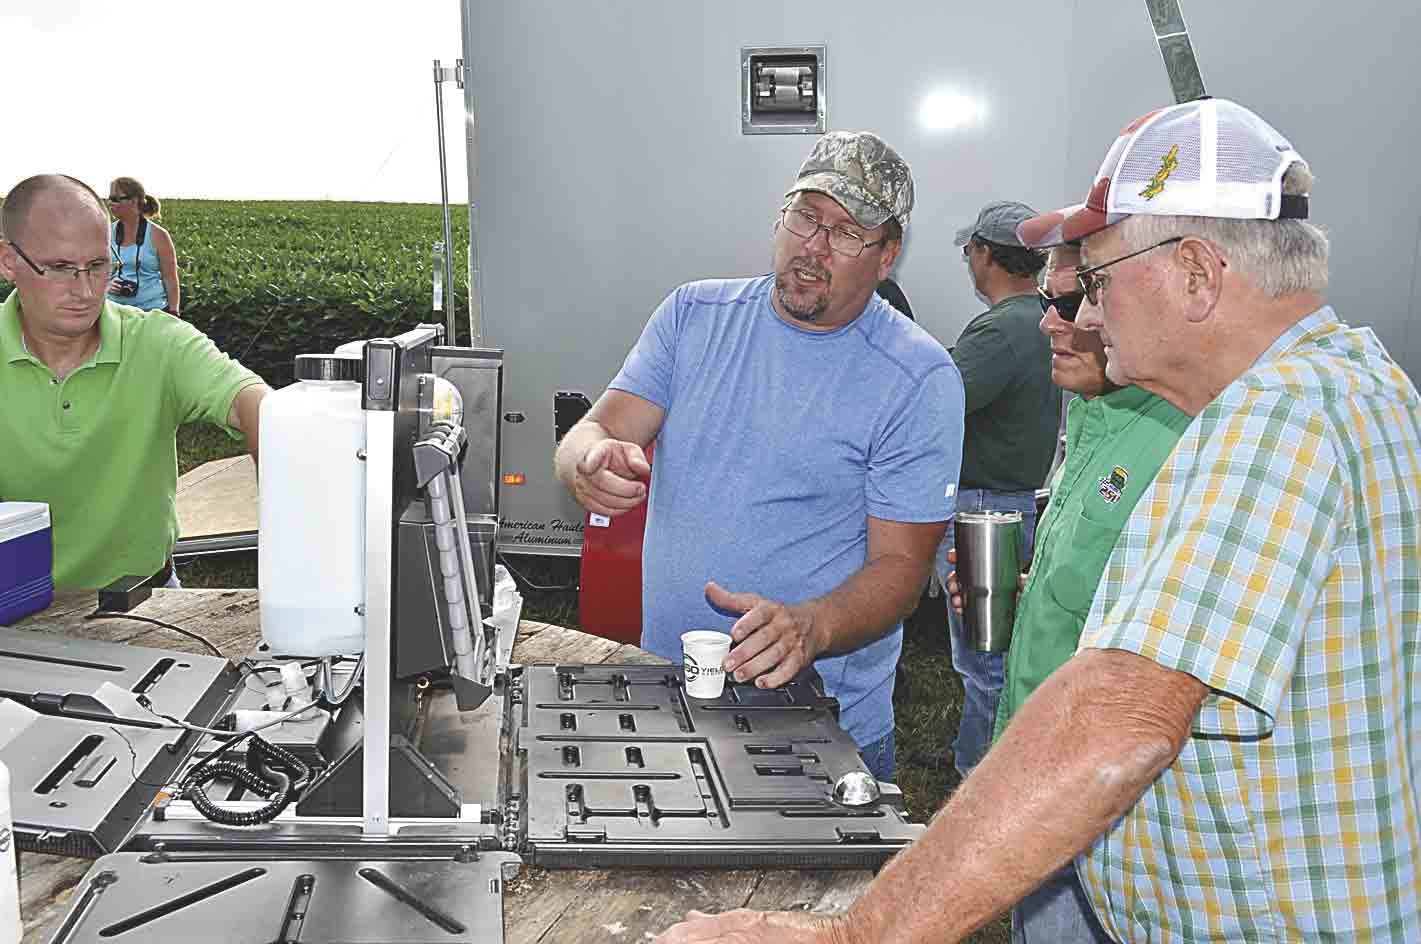 NRCS employee Roger Erickson (center) discusses a tool used for soil and water analysis during a cover crop field day just outside West Union on Tuesday, Aug. 16. The device can test for phosphorus, nitrates, pH (acidity) and sulphur. Listening (at right) are Tim Recker and Bob Deering. (...